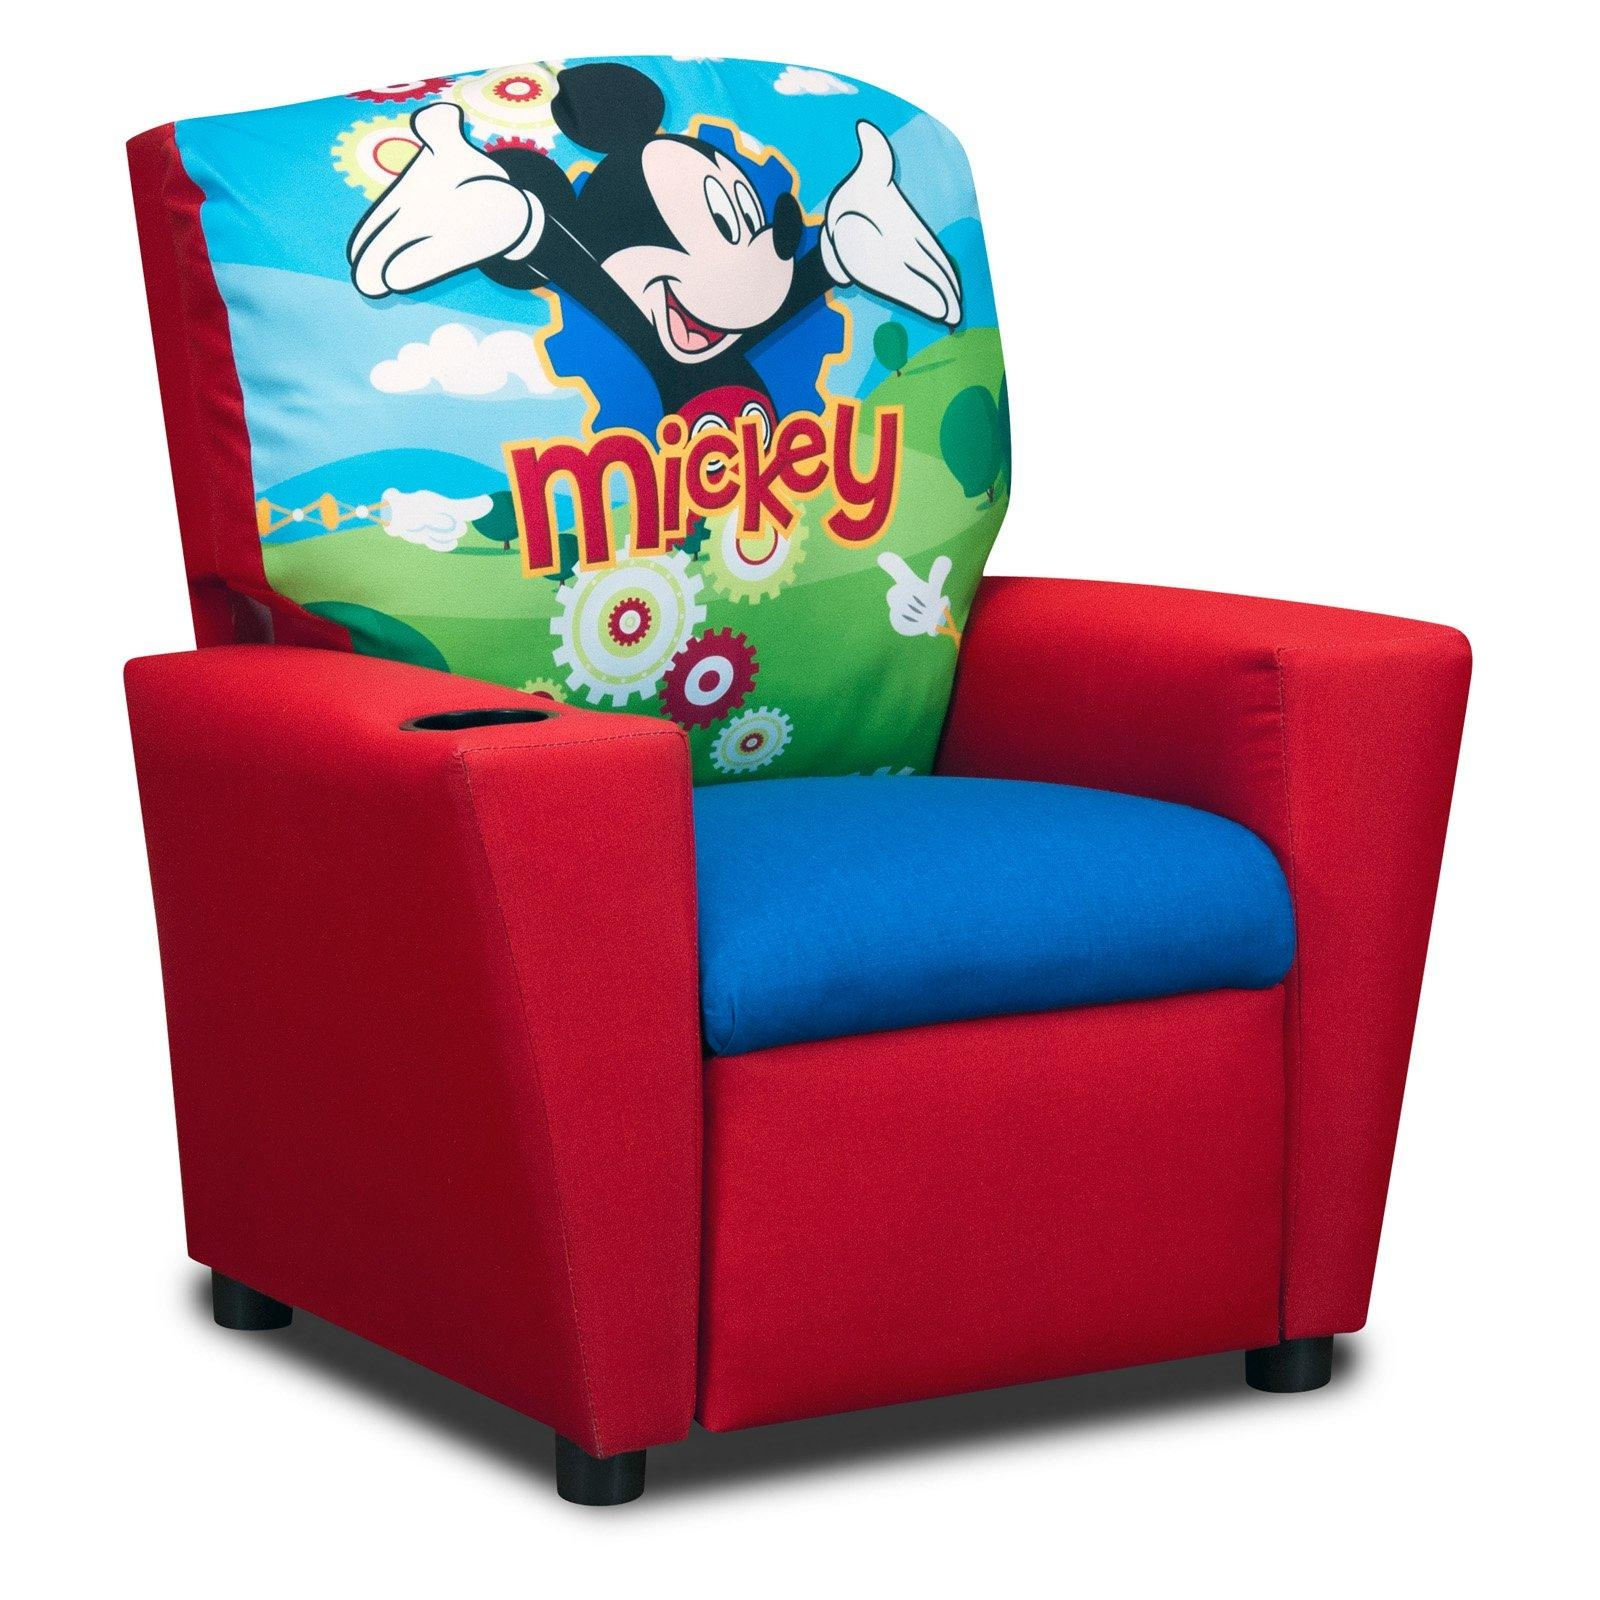 mickey mouse sofa black leather chrome legs 20 43 choices of clubhouse couches ideas